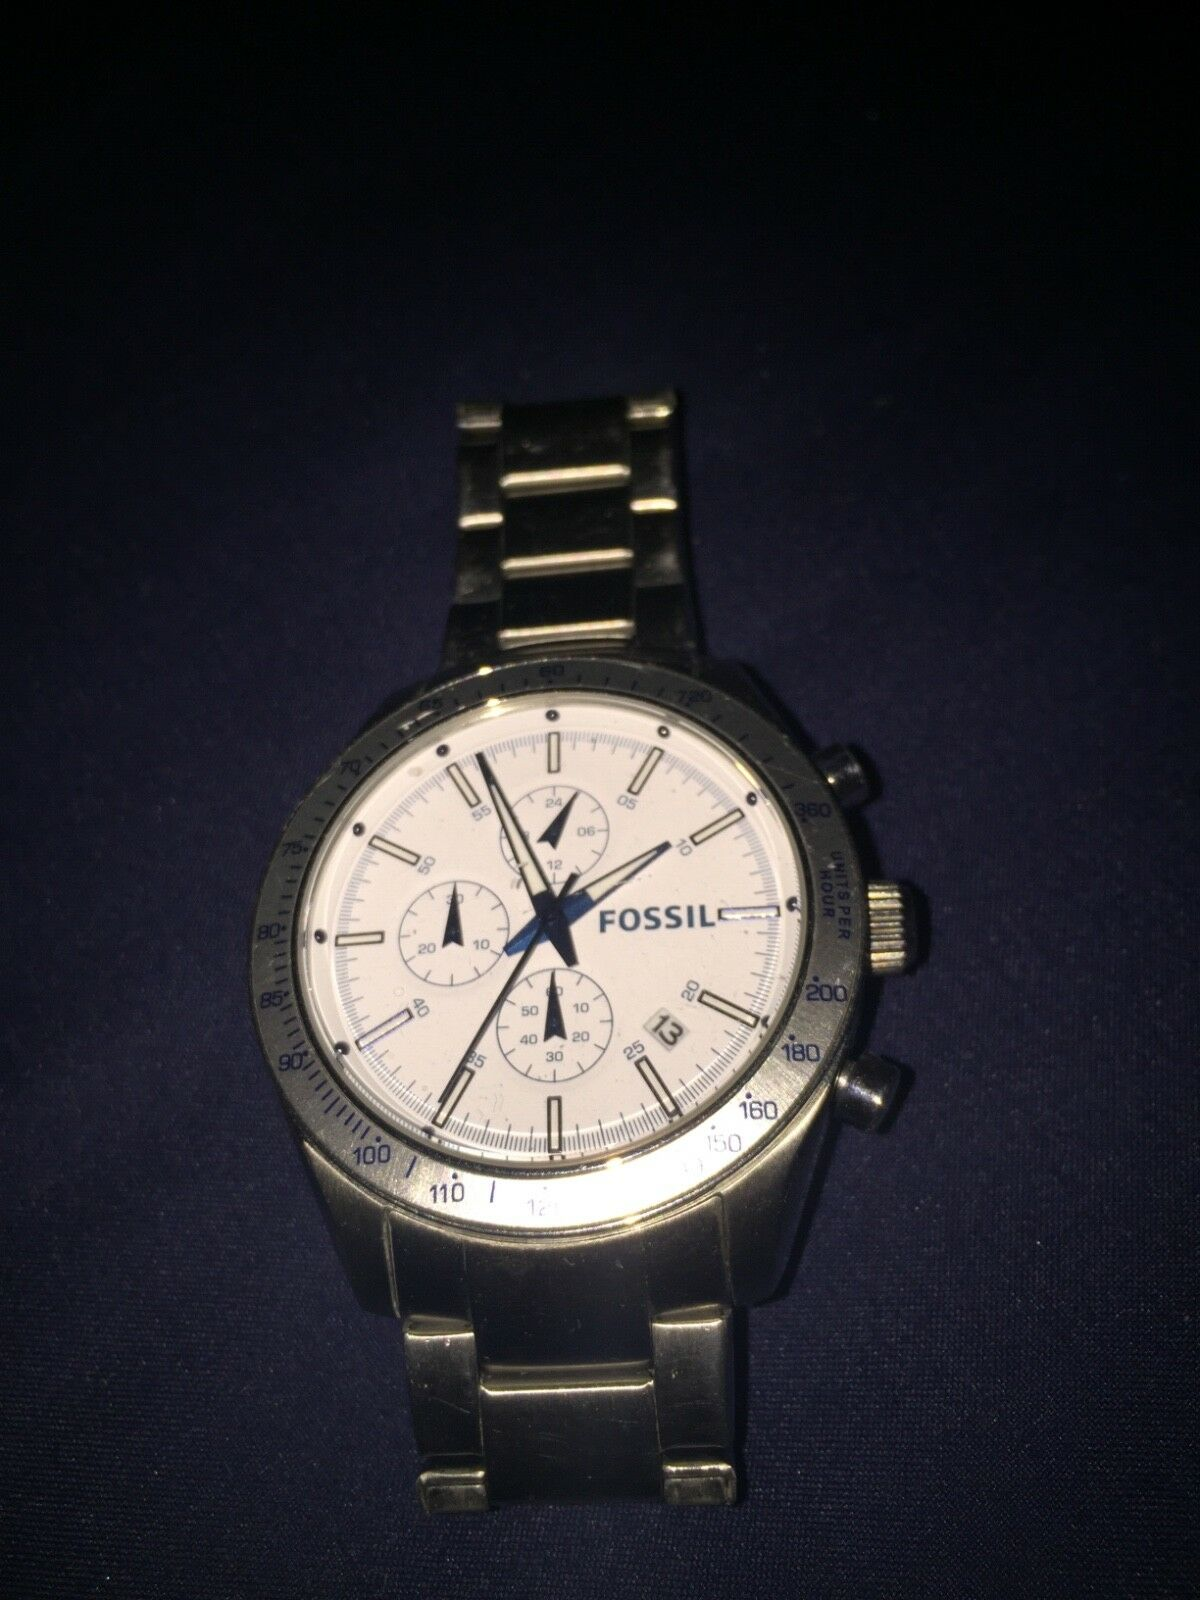 Silver Used Mens Fossil Watch 2500 Picclick Fs4736 1 Of 1only Available